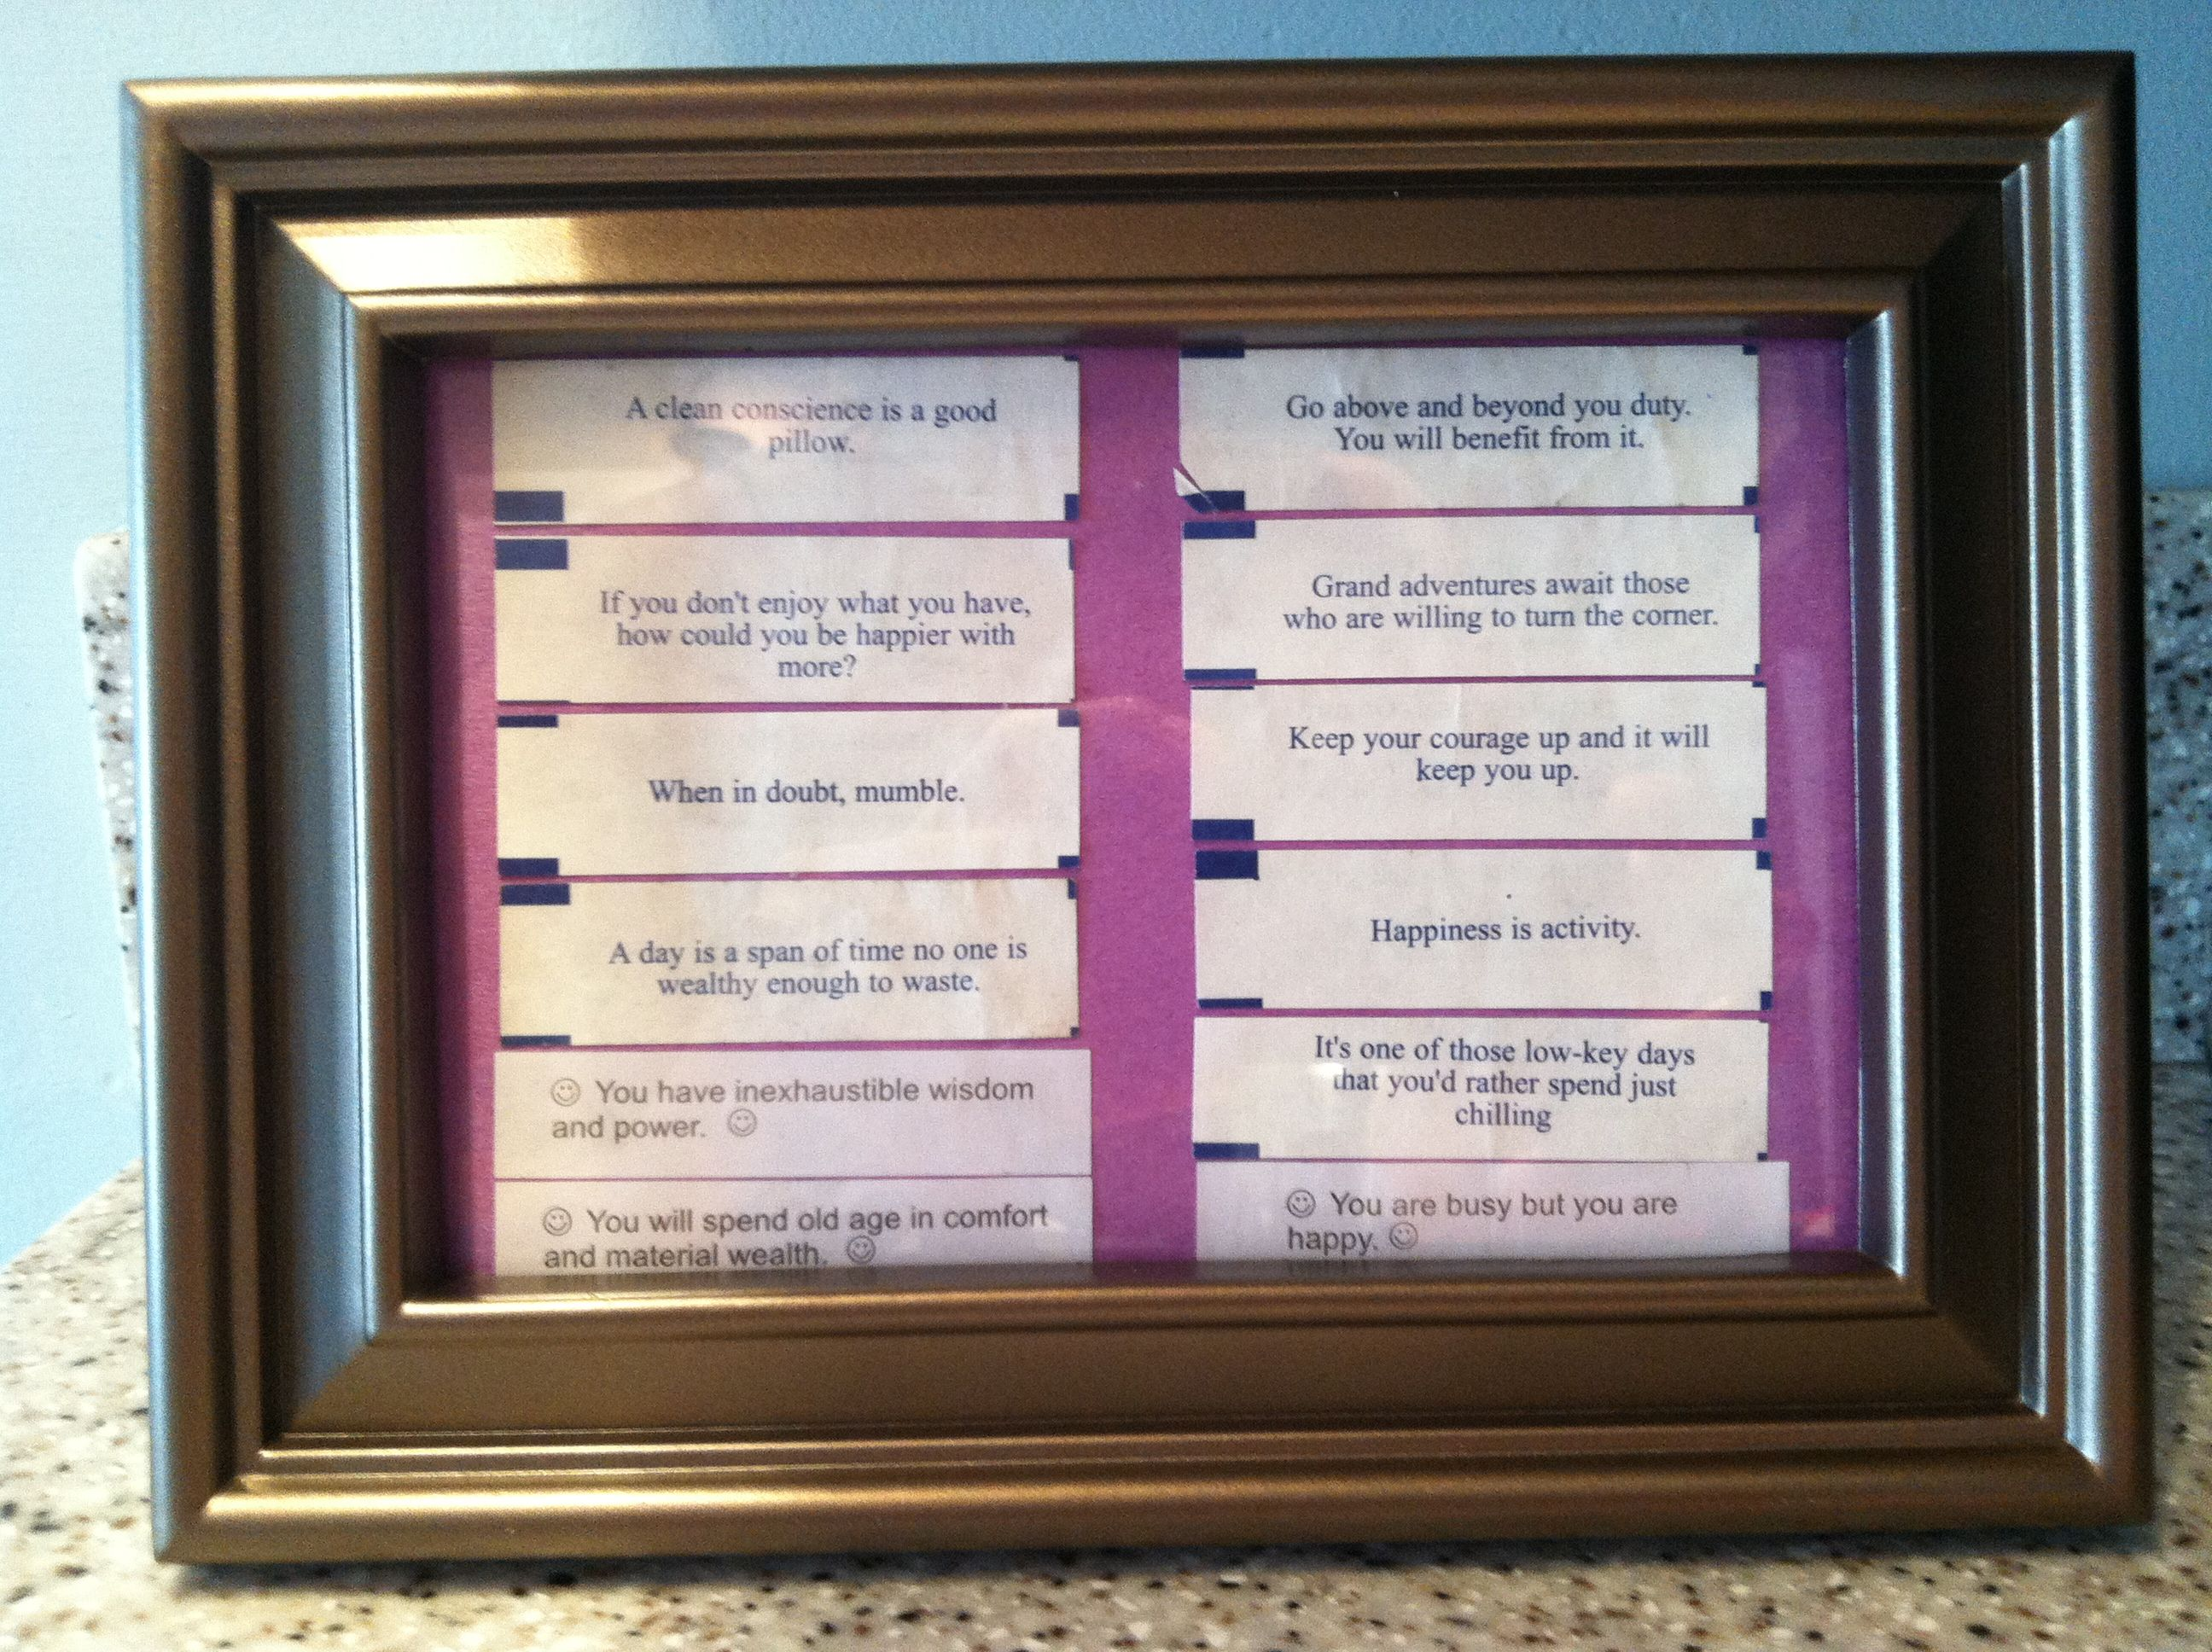 Save fortunes from fortune cookies and make an interesting quote save fortunes from fortune cookies and make an interesting quote picture frame great diy project jeuxipadfo Gallery